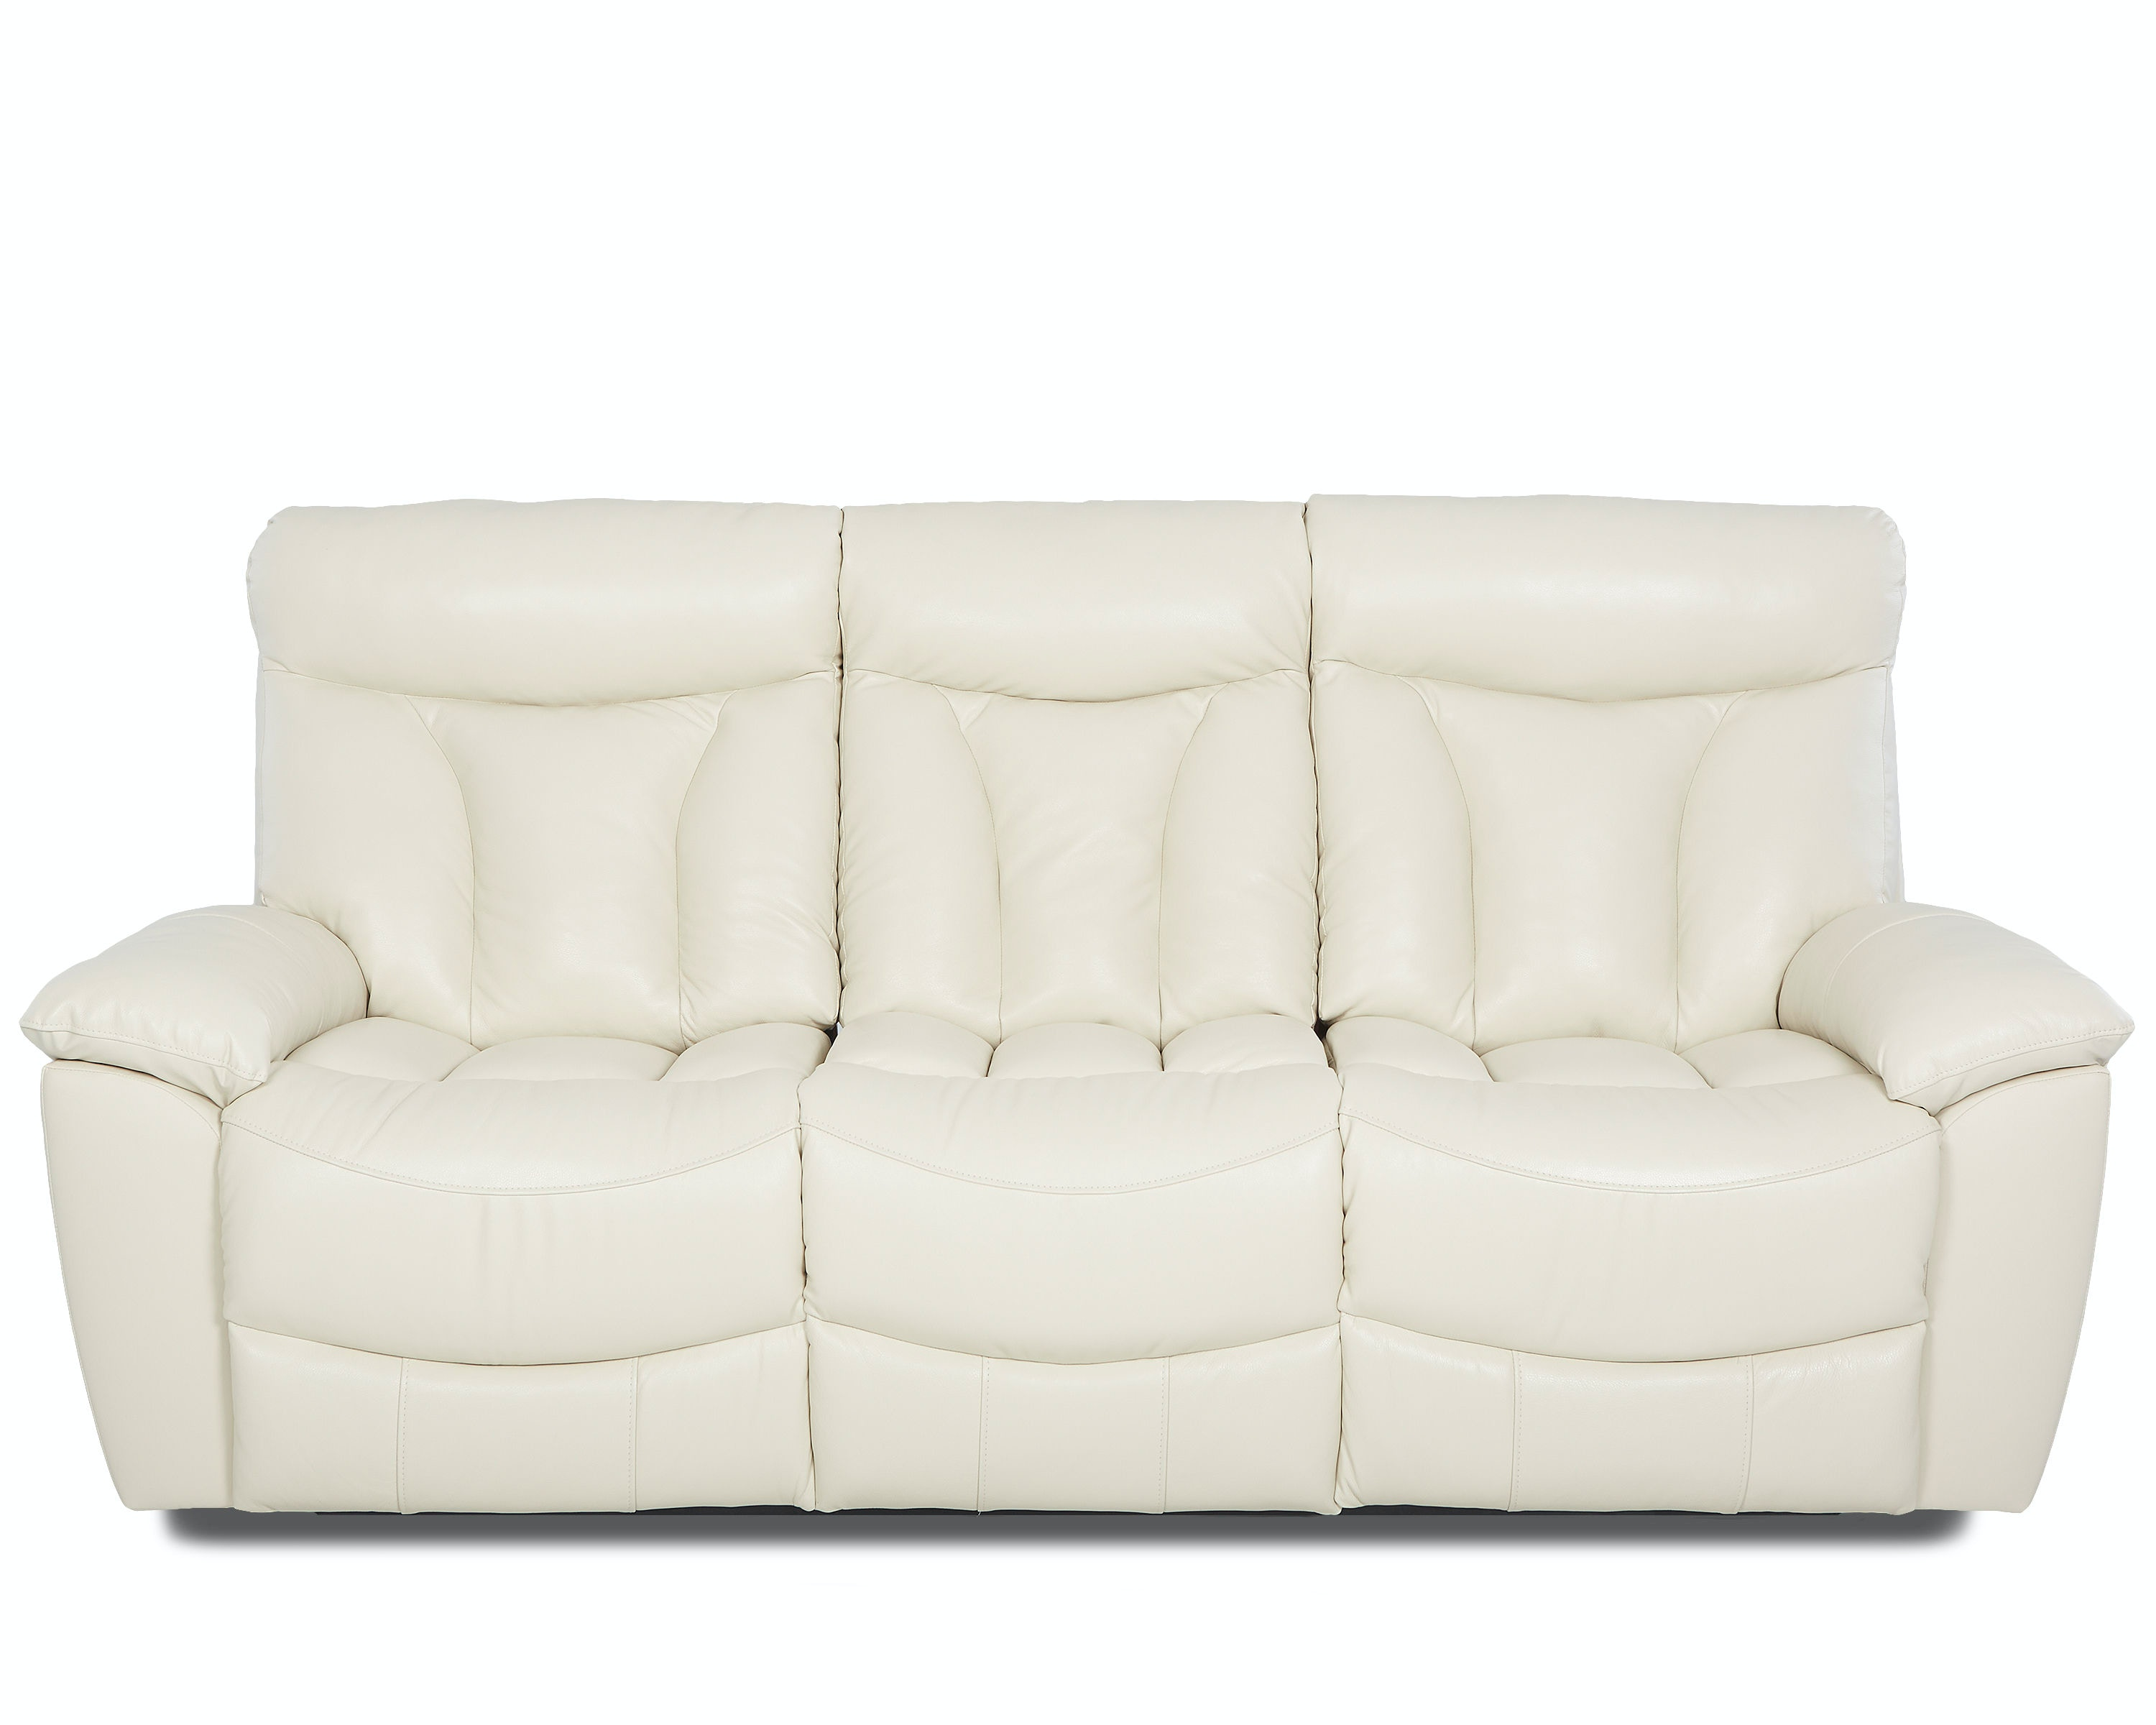 klaussner grand power reclining sofa theater edmonton living room deluxe 63703 rs home furnishings